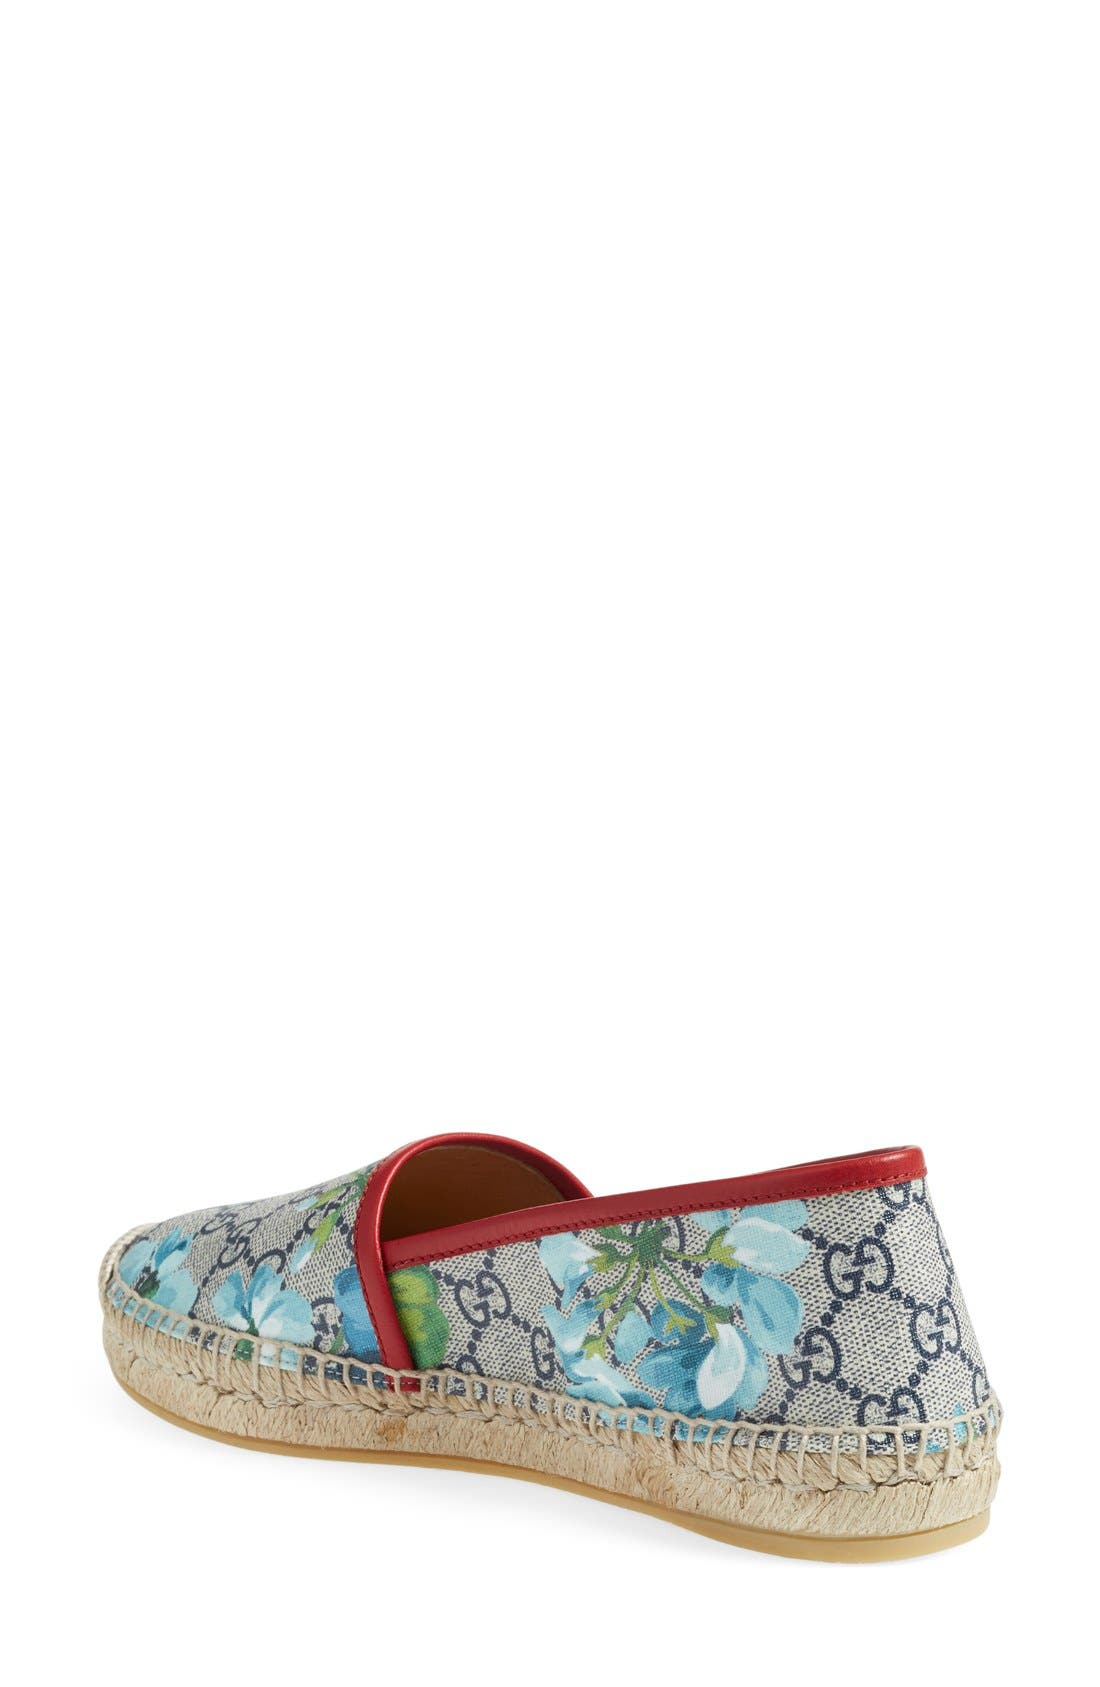 GUCCI, Espadrille Slip-On Flat, Alternate thumbnail 2, color, 600